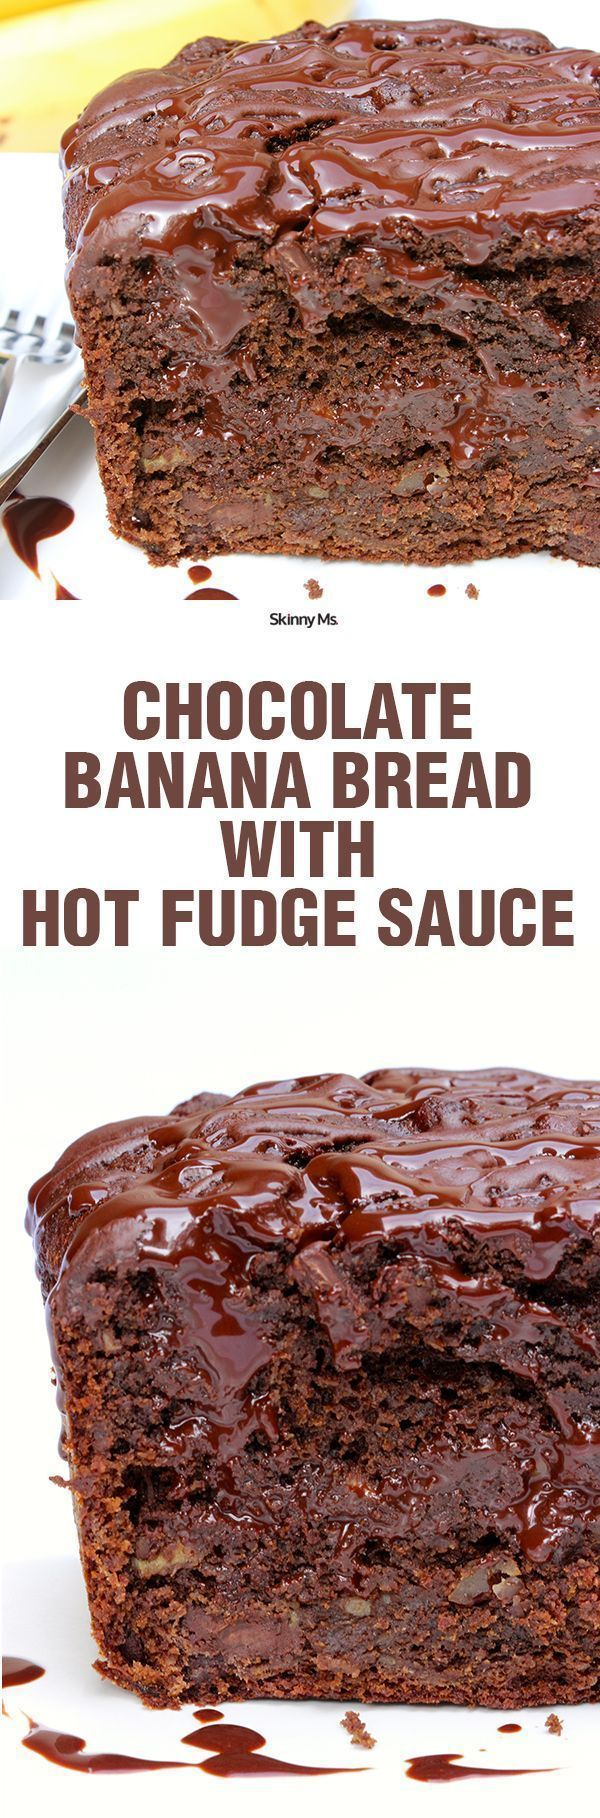 Chocolate Banana Bread with Hot Fudge Sauce--decadence without the guilt. This would be a great Thanksgiving recipe!